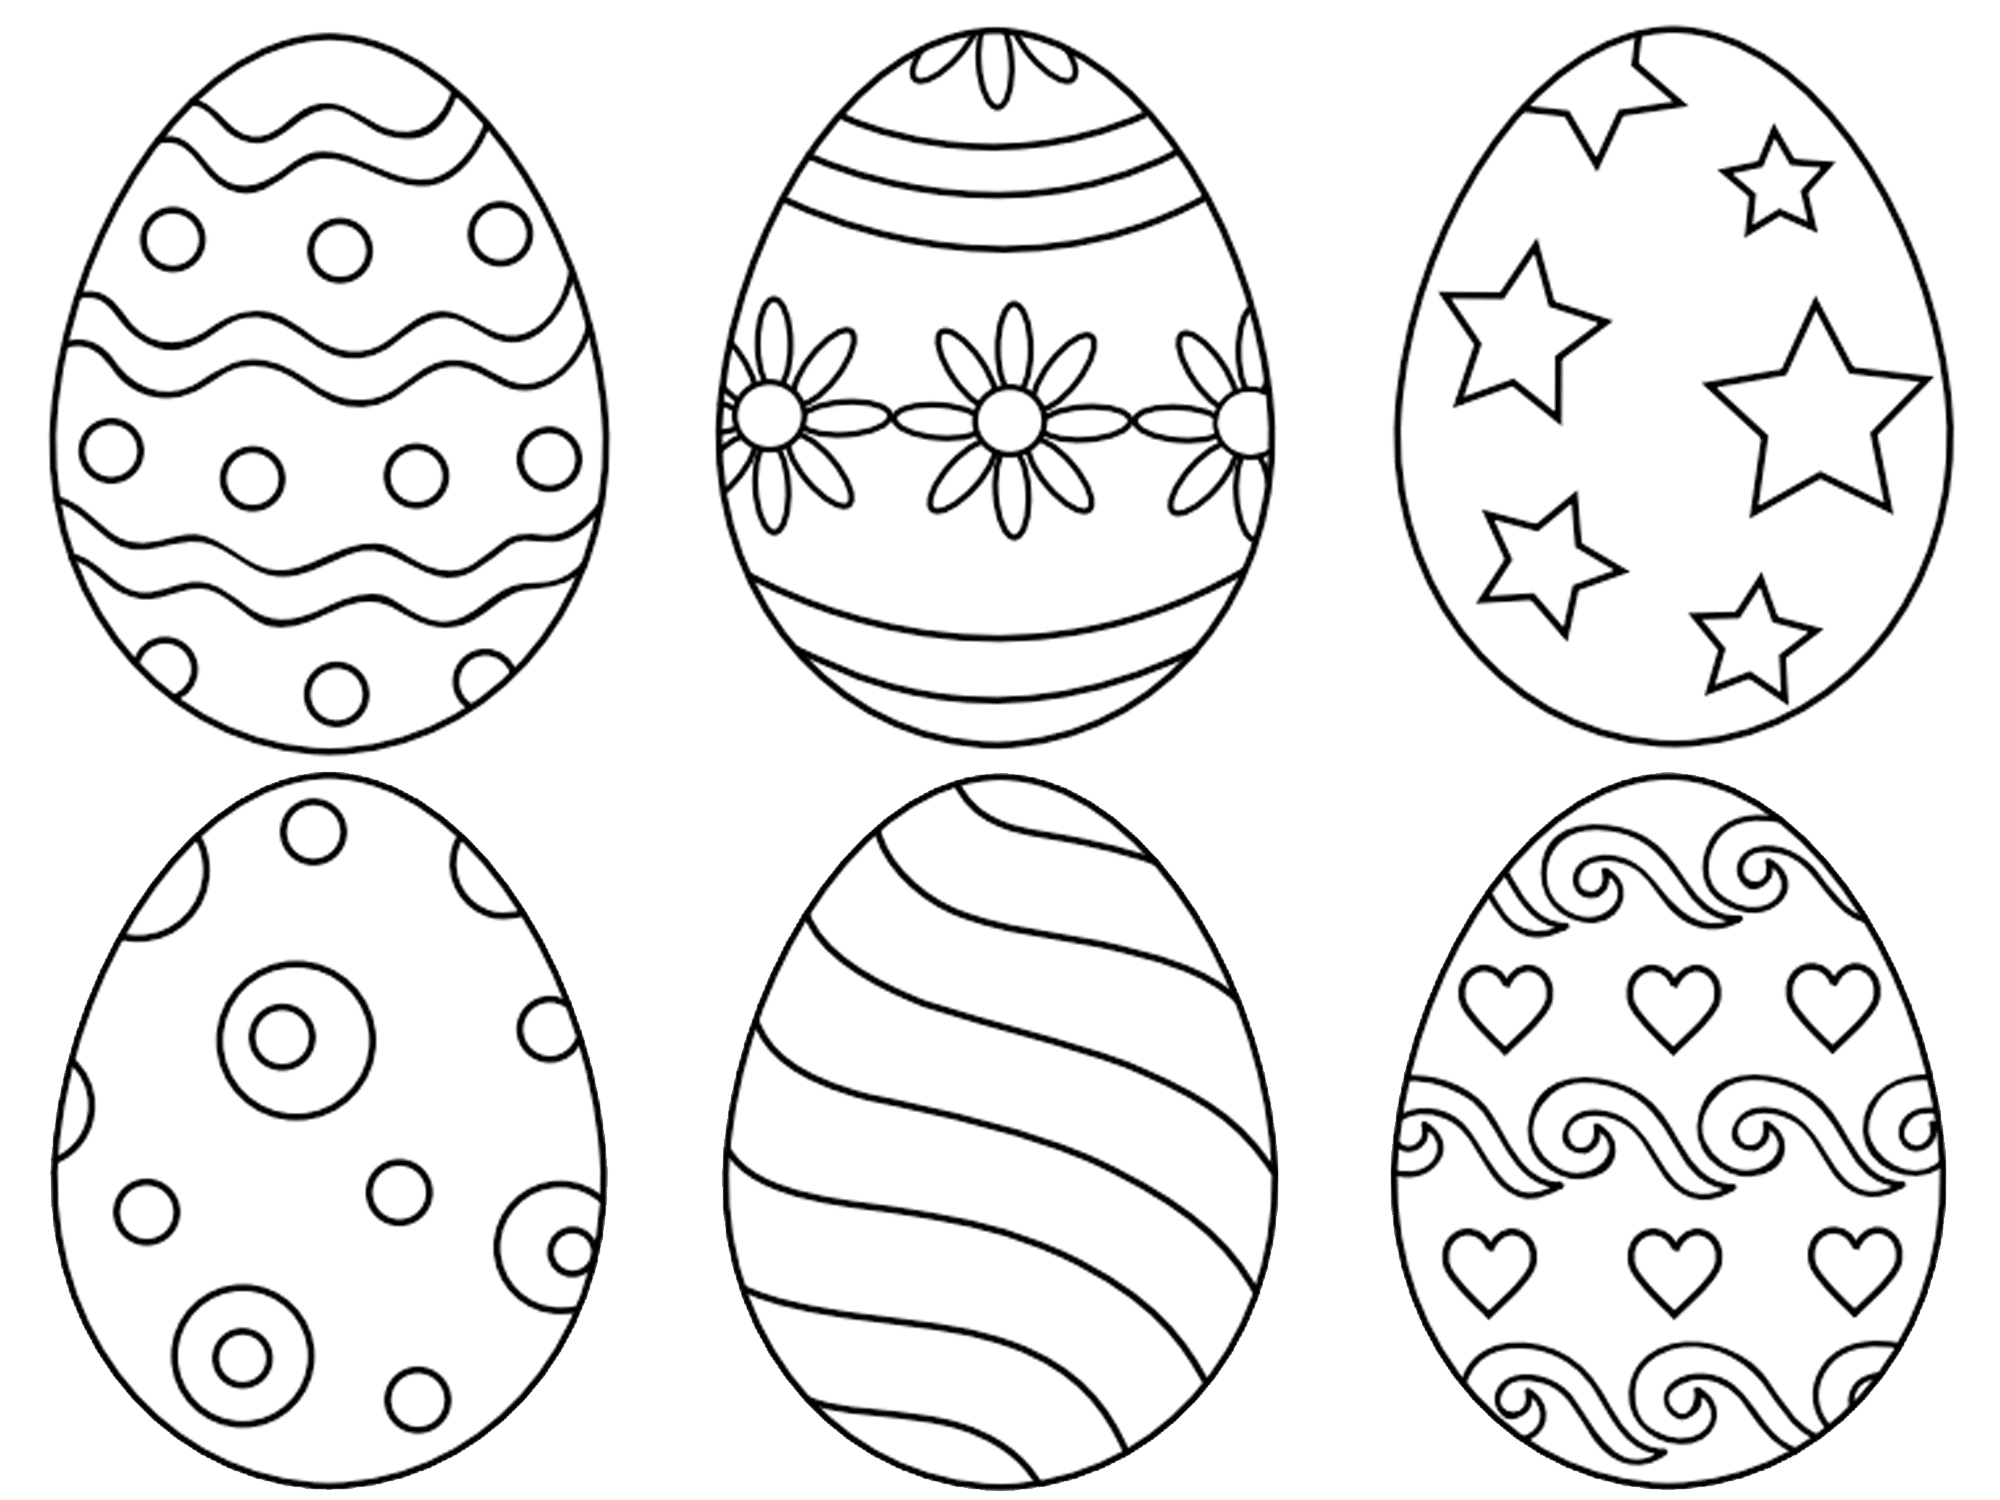 easter eggs coloring page free printable easter egg coloring pages for kids coloring easter eggs page